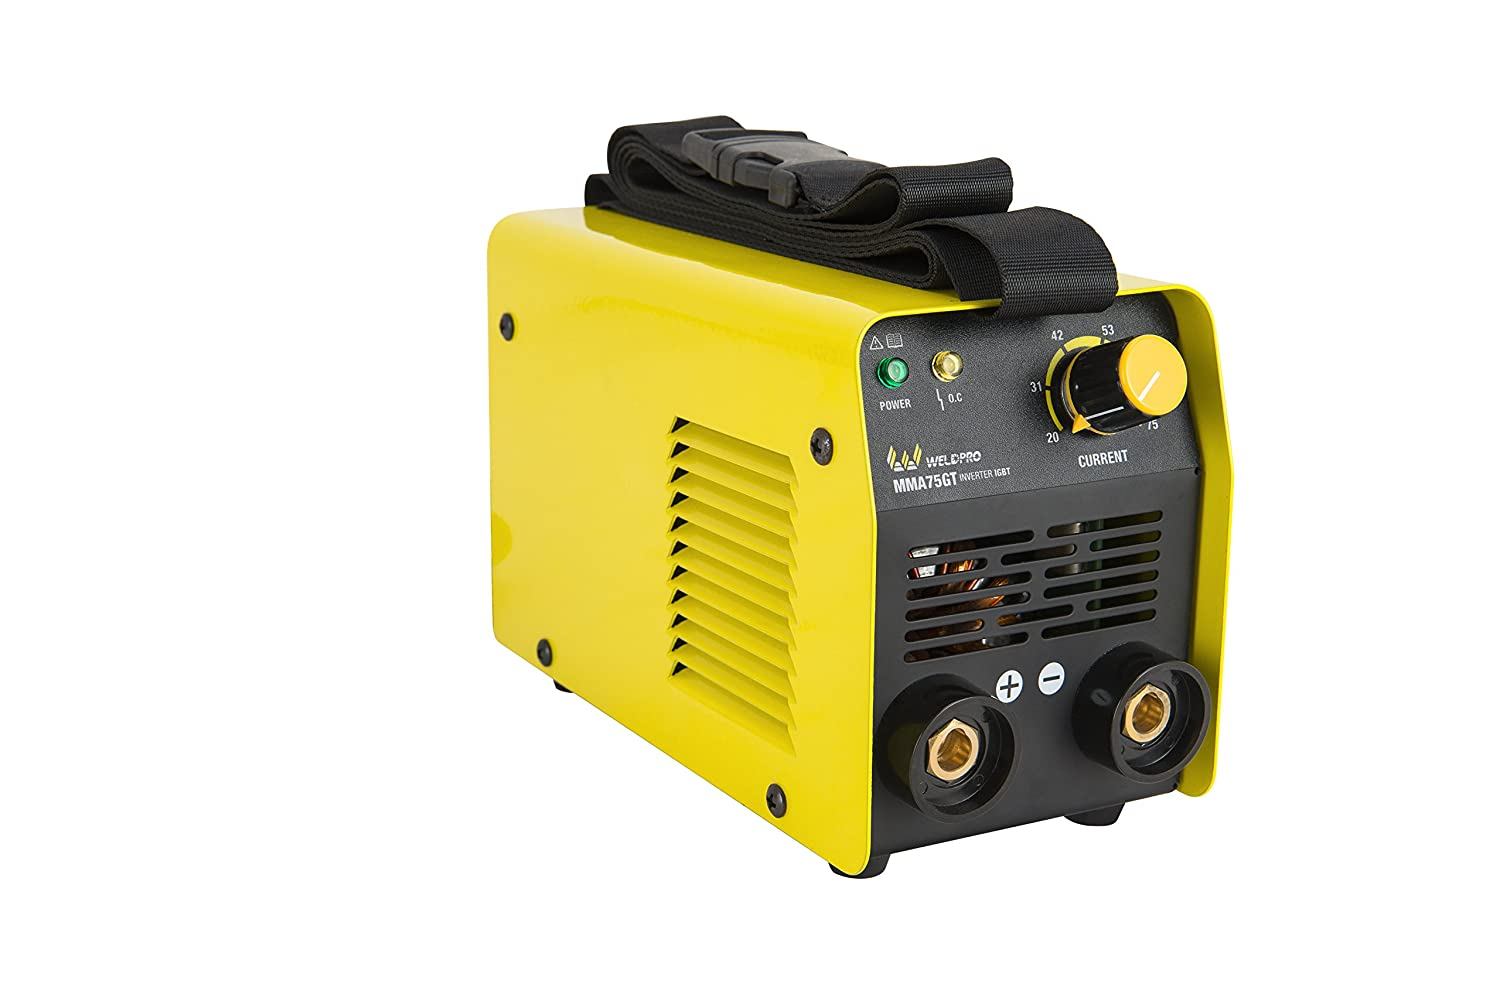 Weldpro 75 Amp Inverter Arc Stick Welder - - Amazon.com